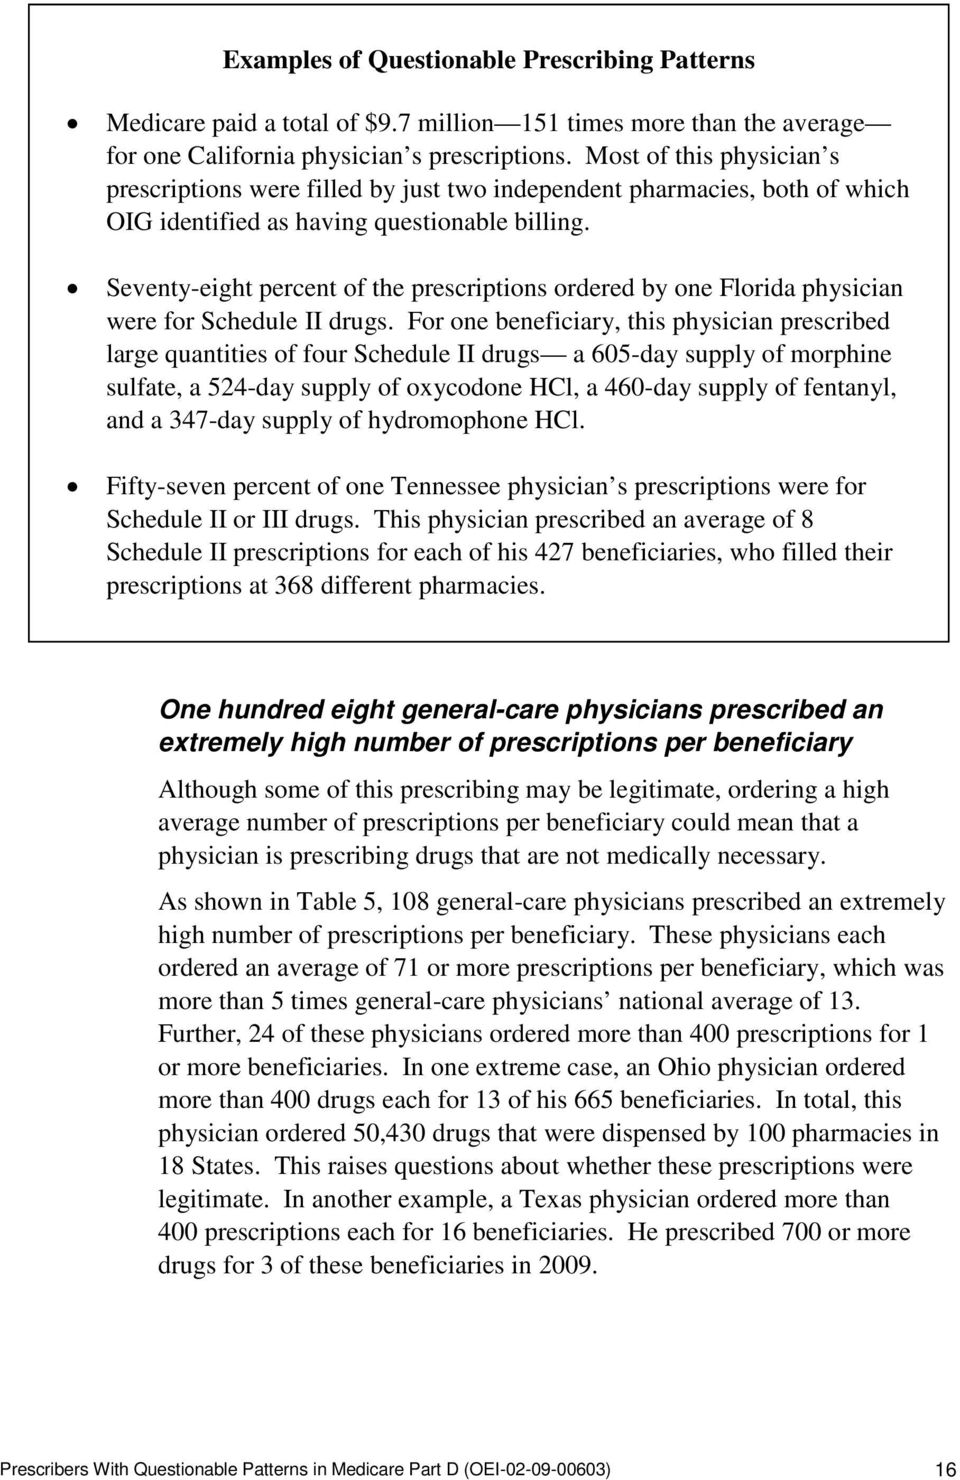 Seventy-eight percent of the prescriptions ordered by one Florida physician were for Schedule II drugs.